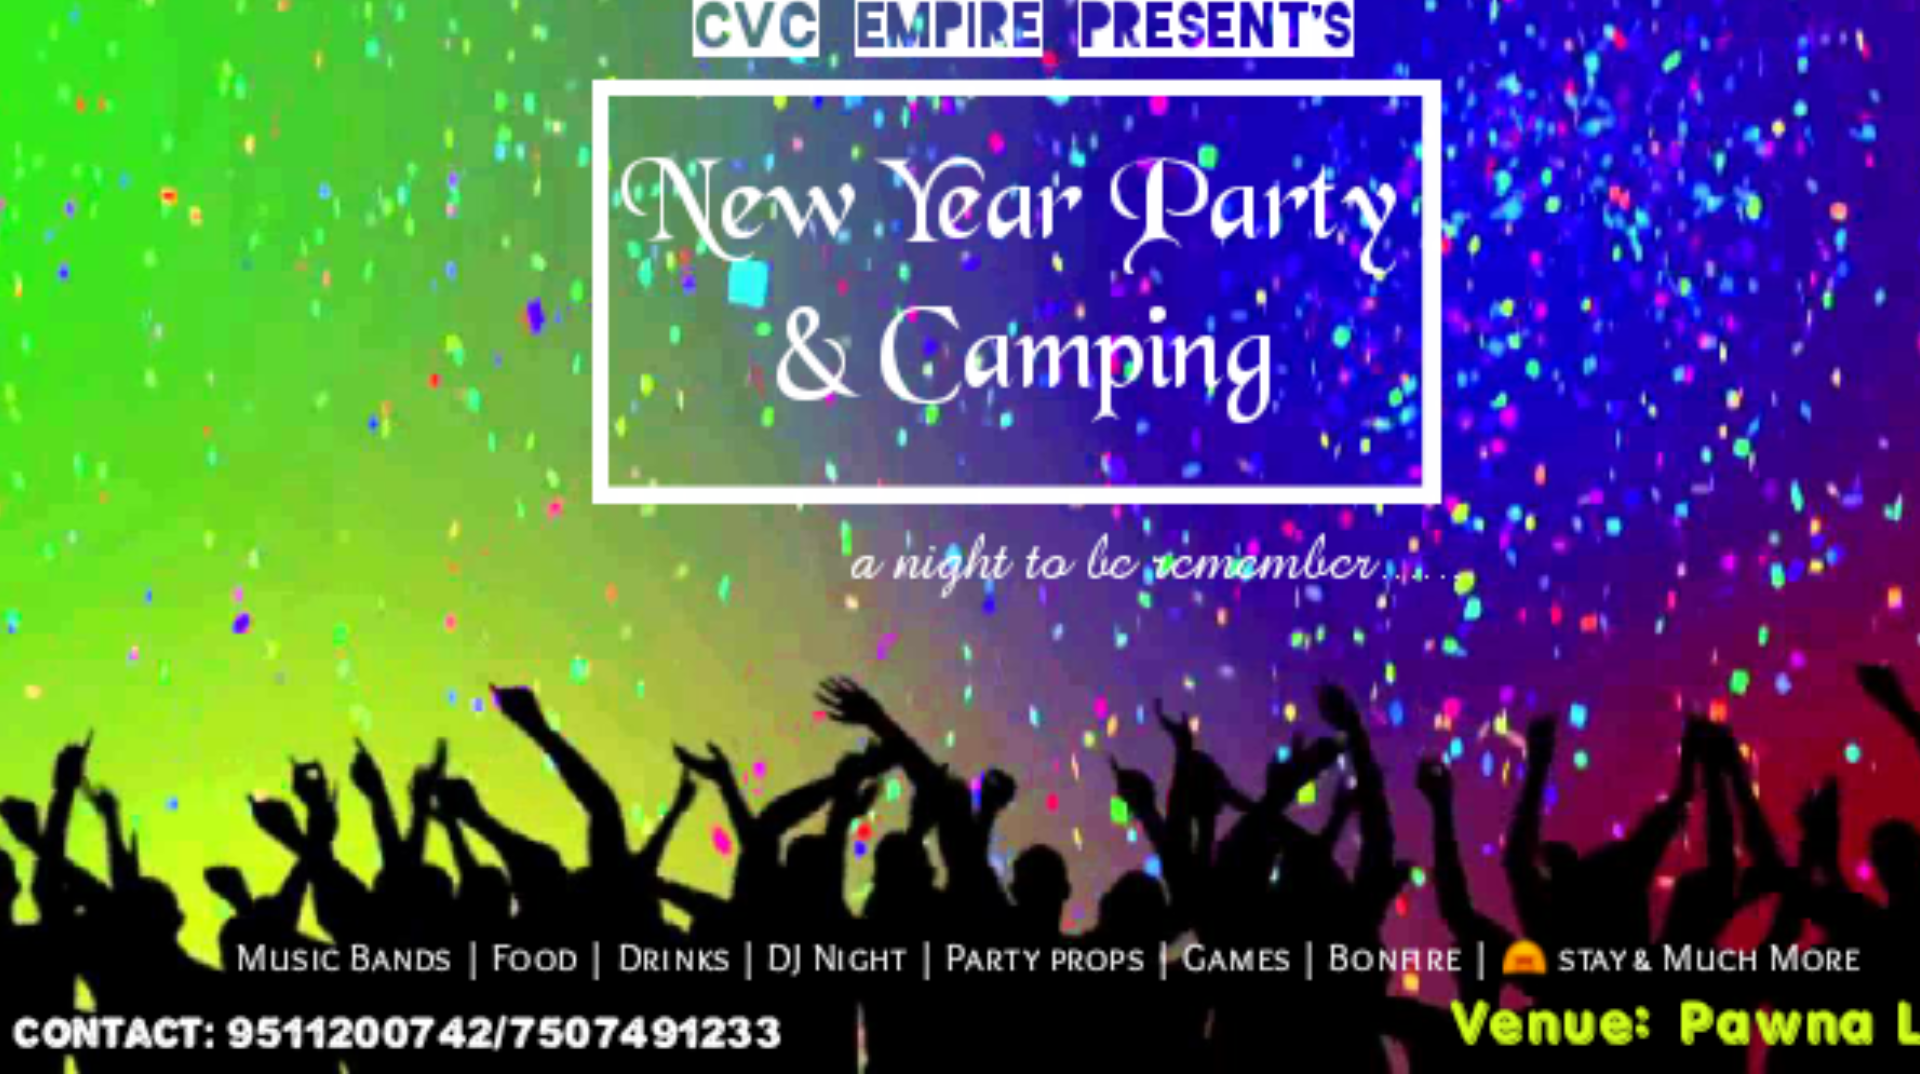 New Year Lake Side Party Tickets by CVC Empire, Tuesday ...